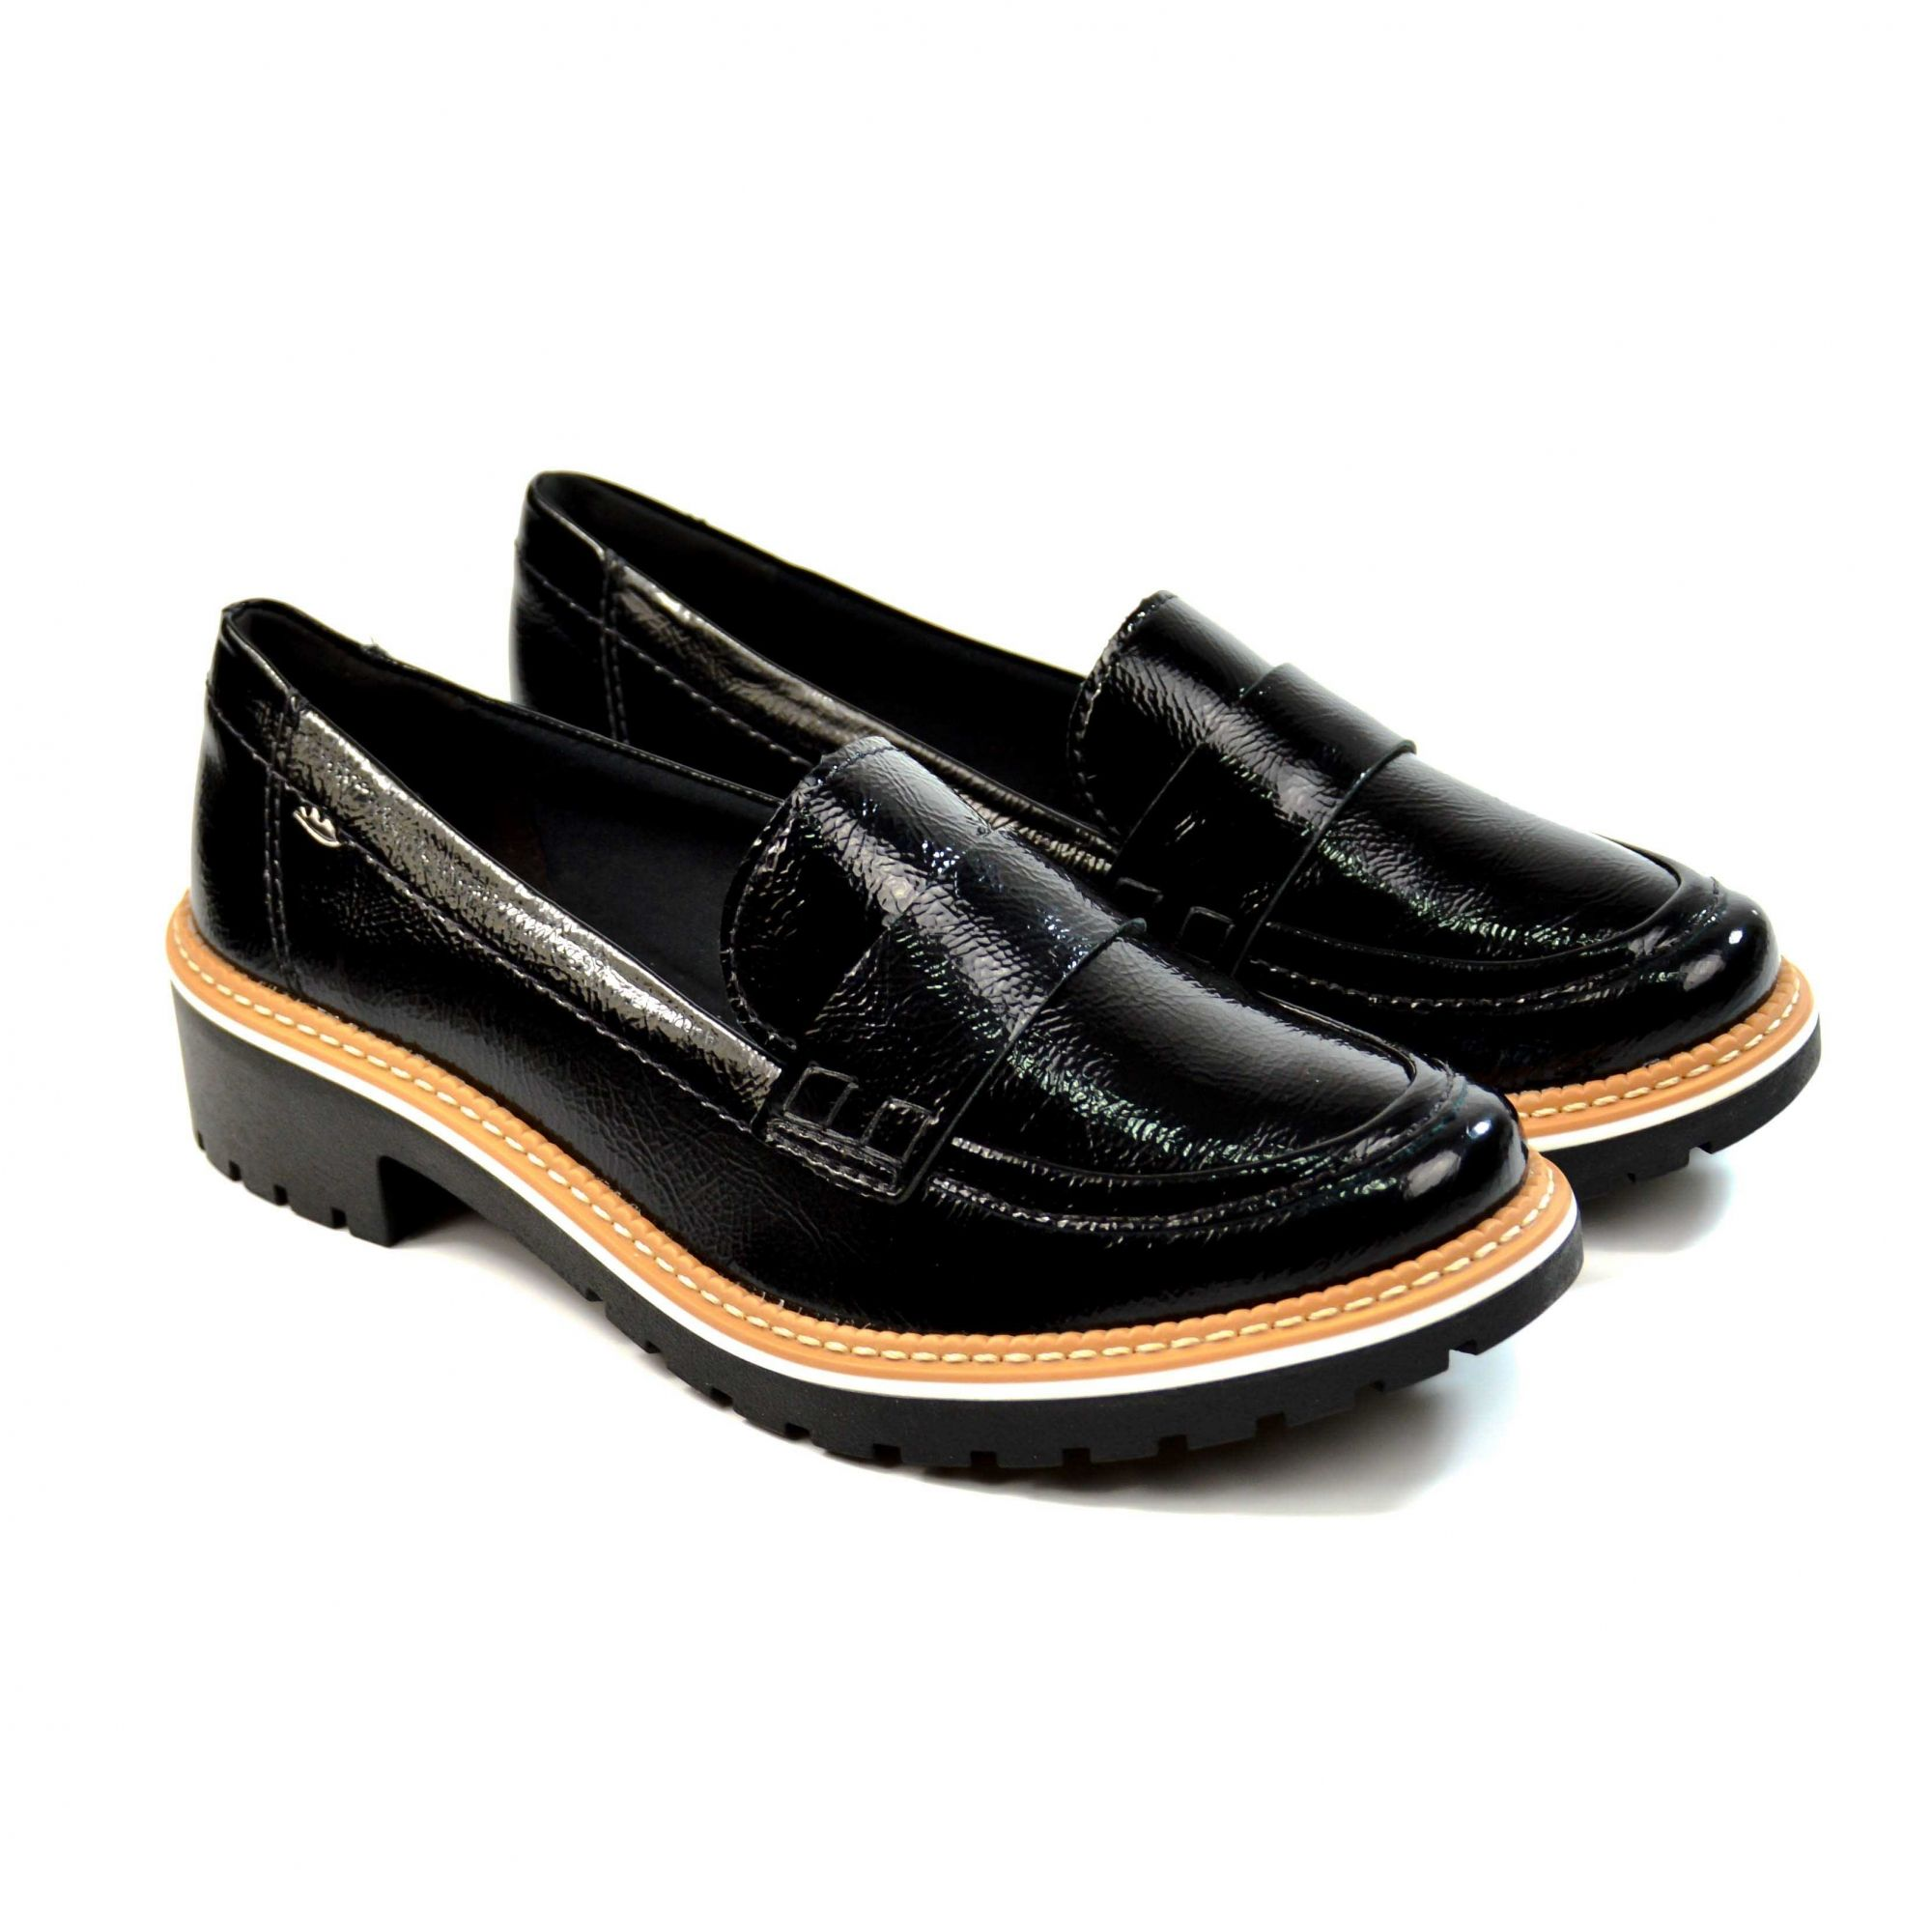 MOCASSIM B8462 PRETO FOLLOW DAKOTA 15802